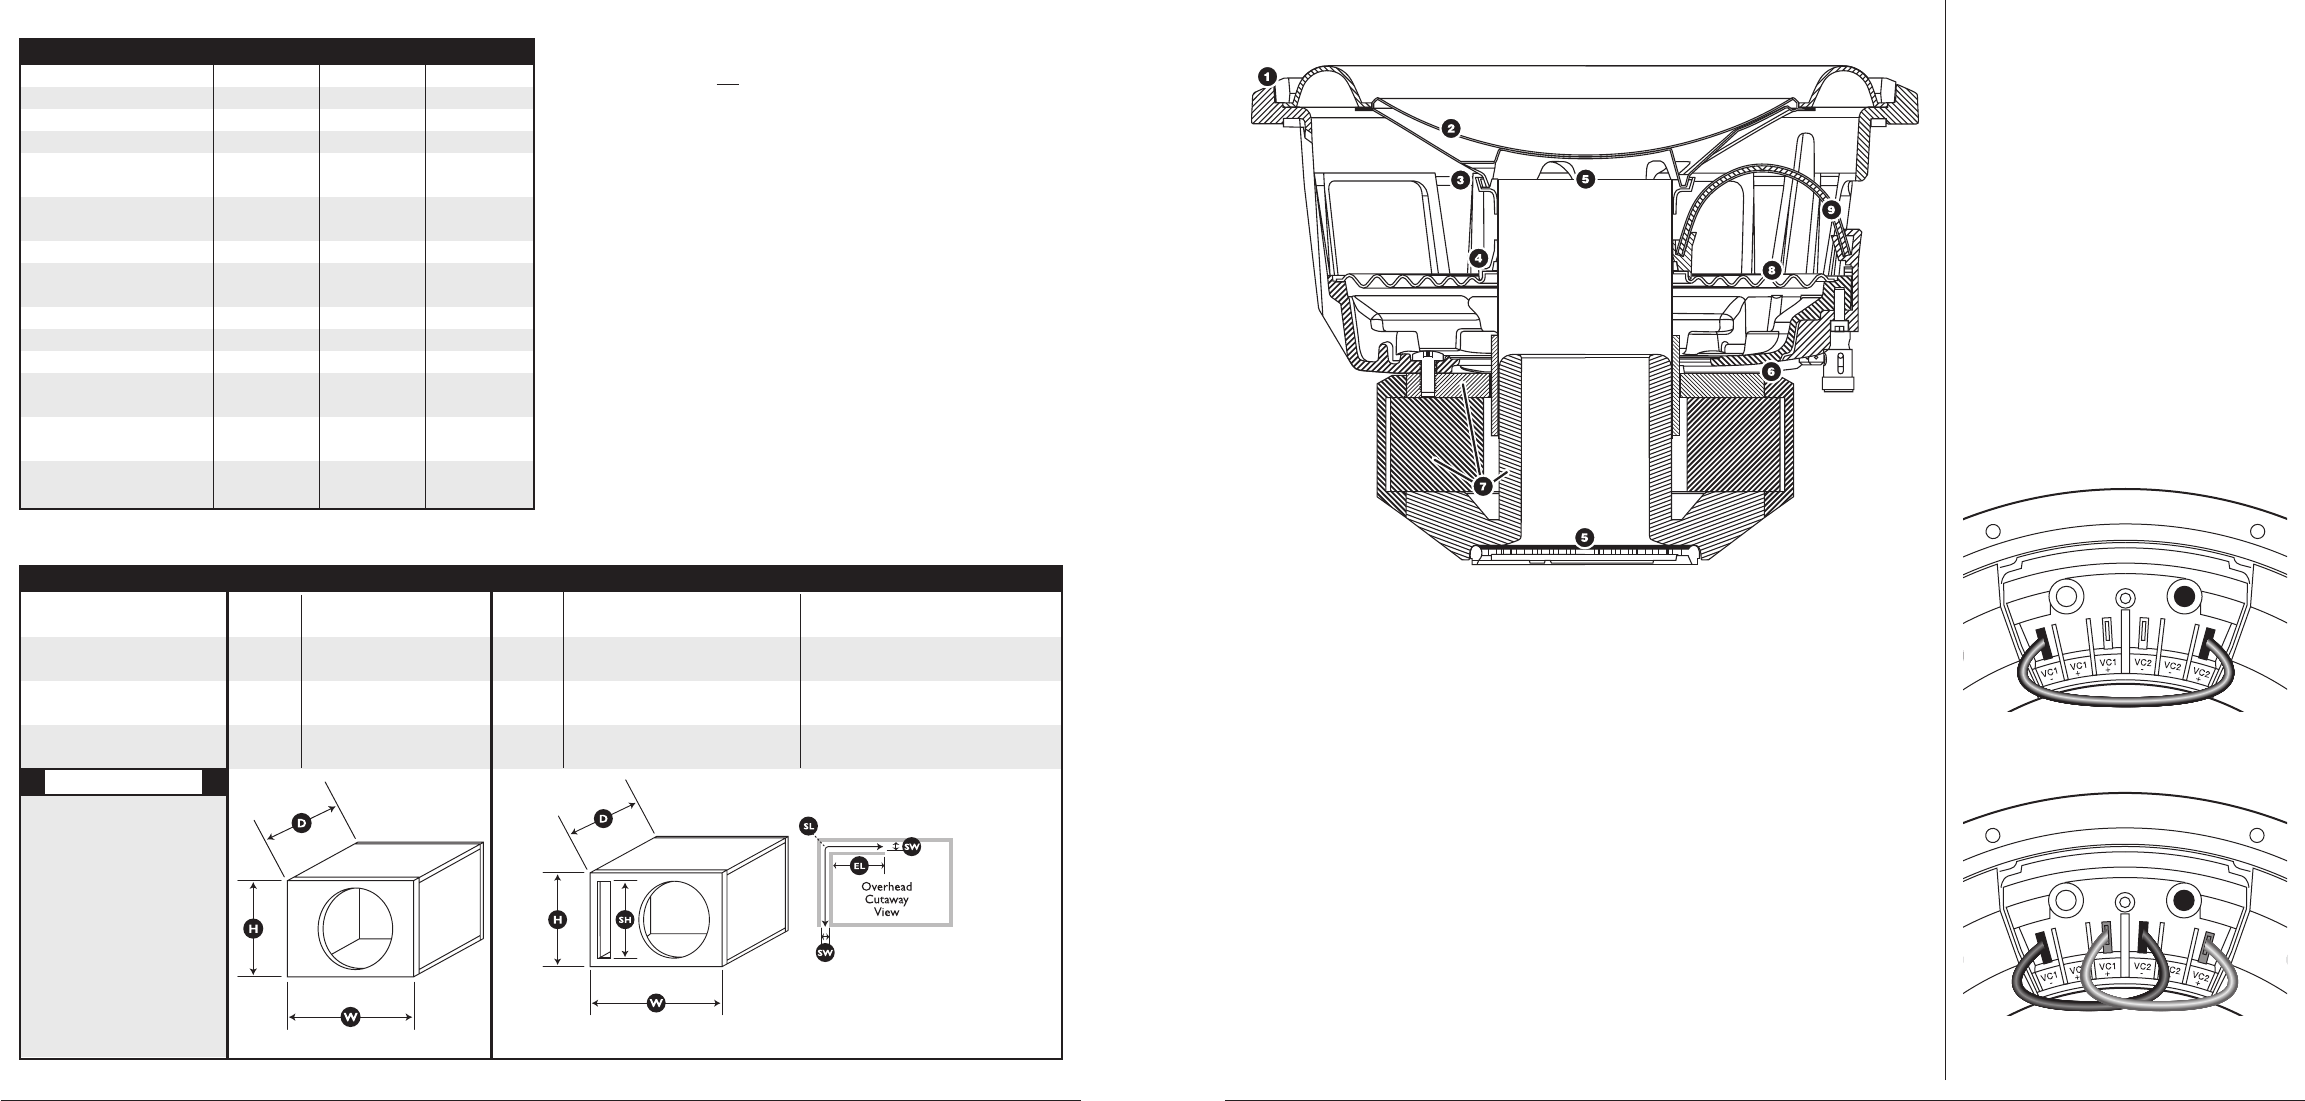 596afd09 064e 6f84 6d6b 3c5d40f0eb41 bg2 page 2 of jl audio speaker 10w6v2 d4 user guide manualsonline com jl audio speaker wiring diagram at fashall.co